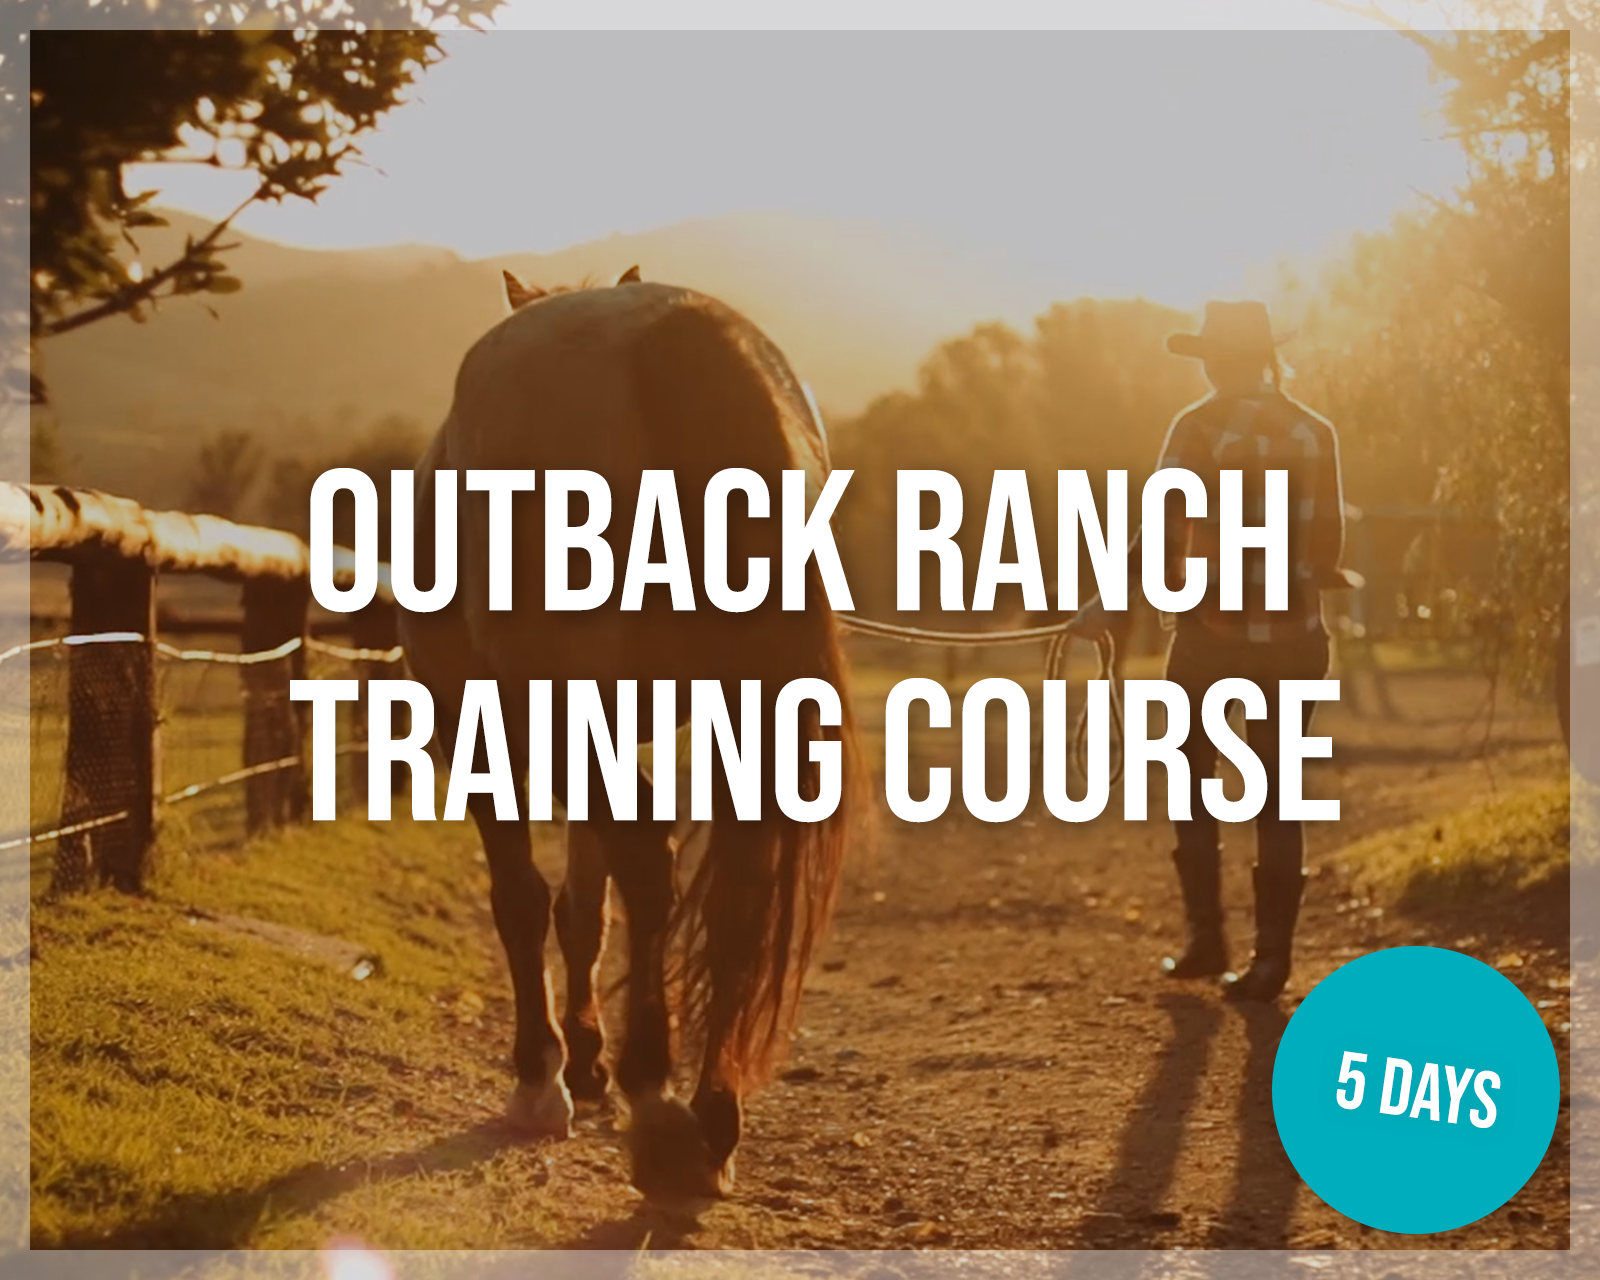 australia-tour-packages-outback-ranch-course